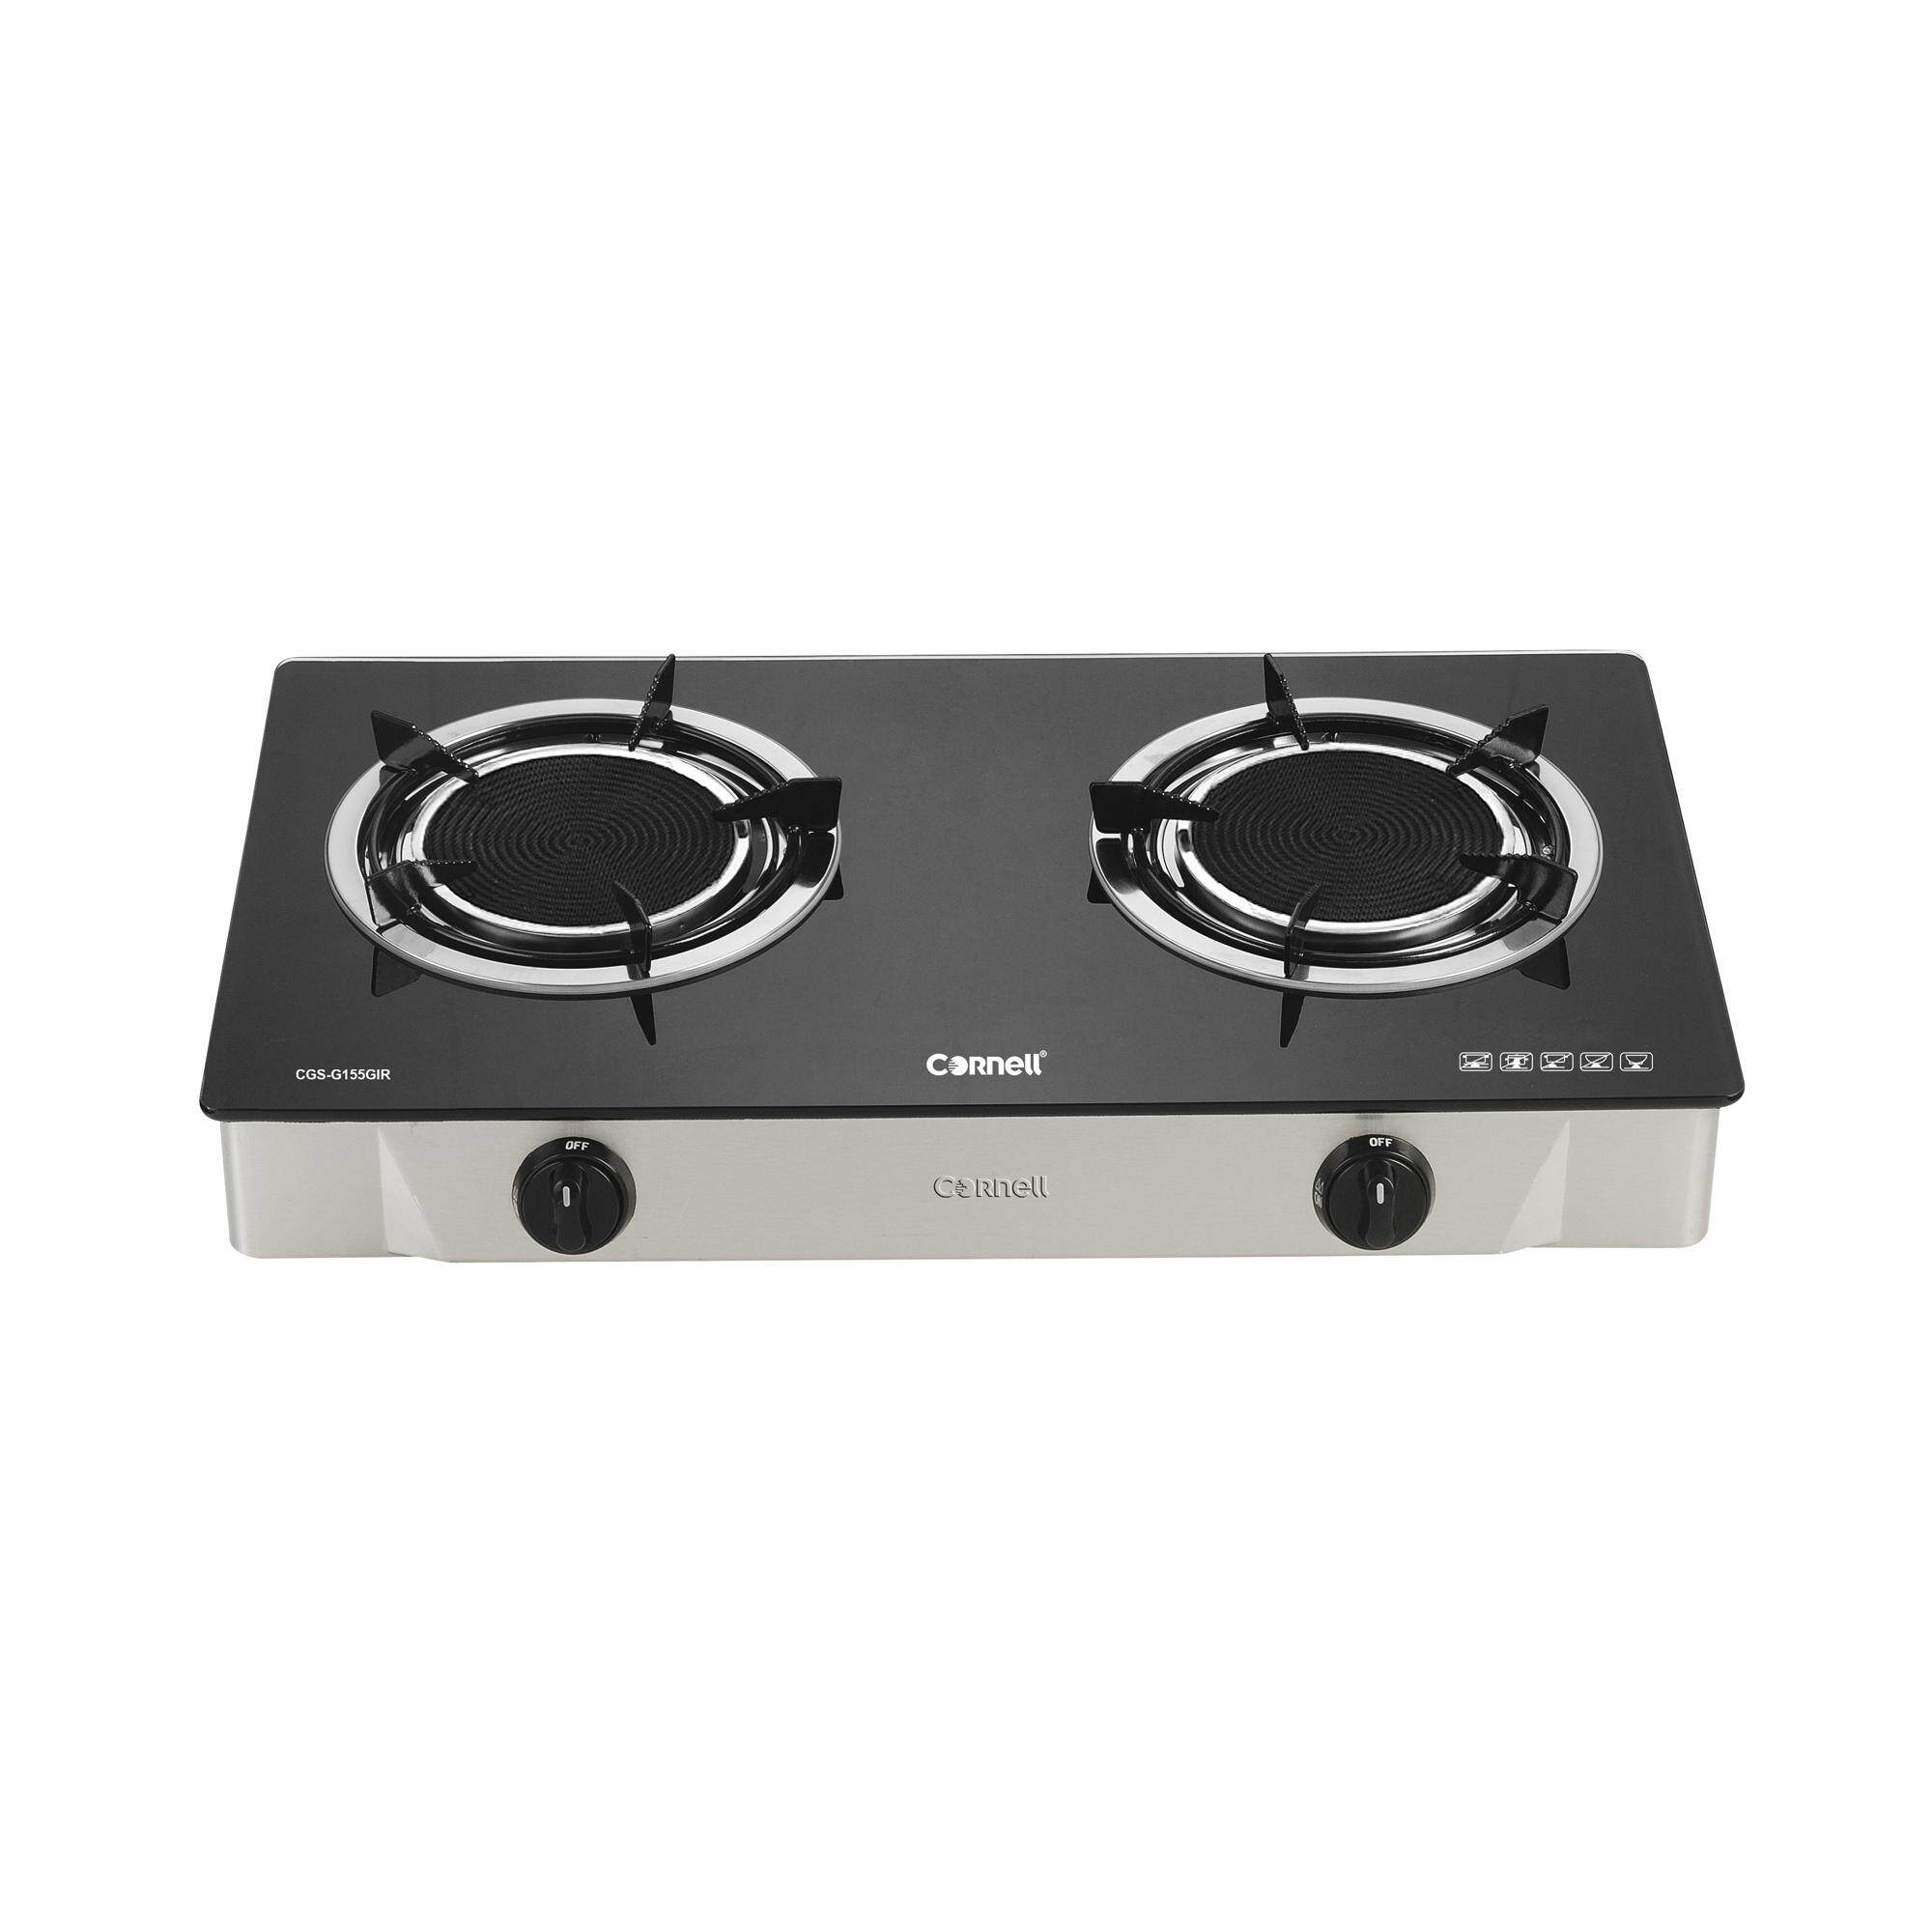 CORNELL INFRARED GLASS STOVE DOUBLE BURNER (CGS-G155GIR)